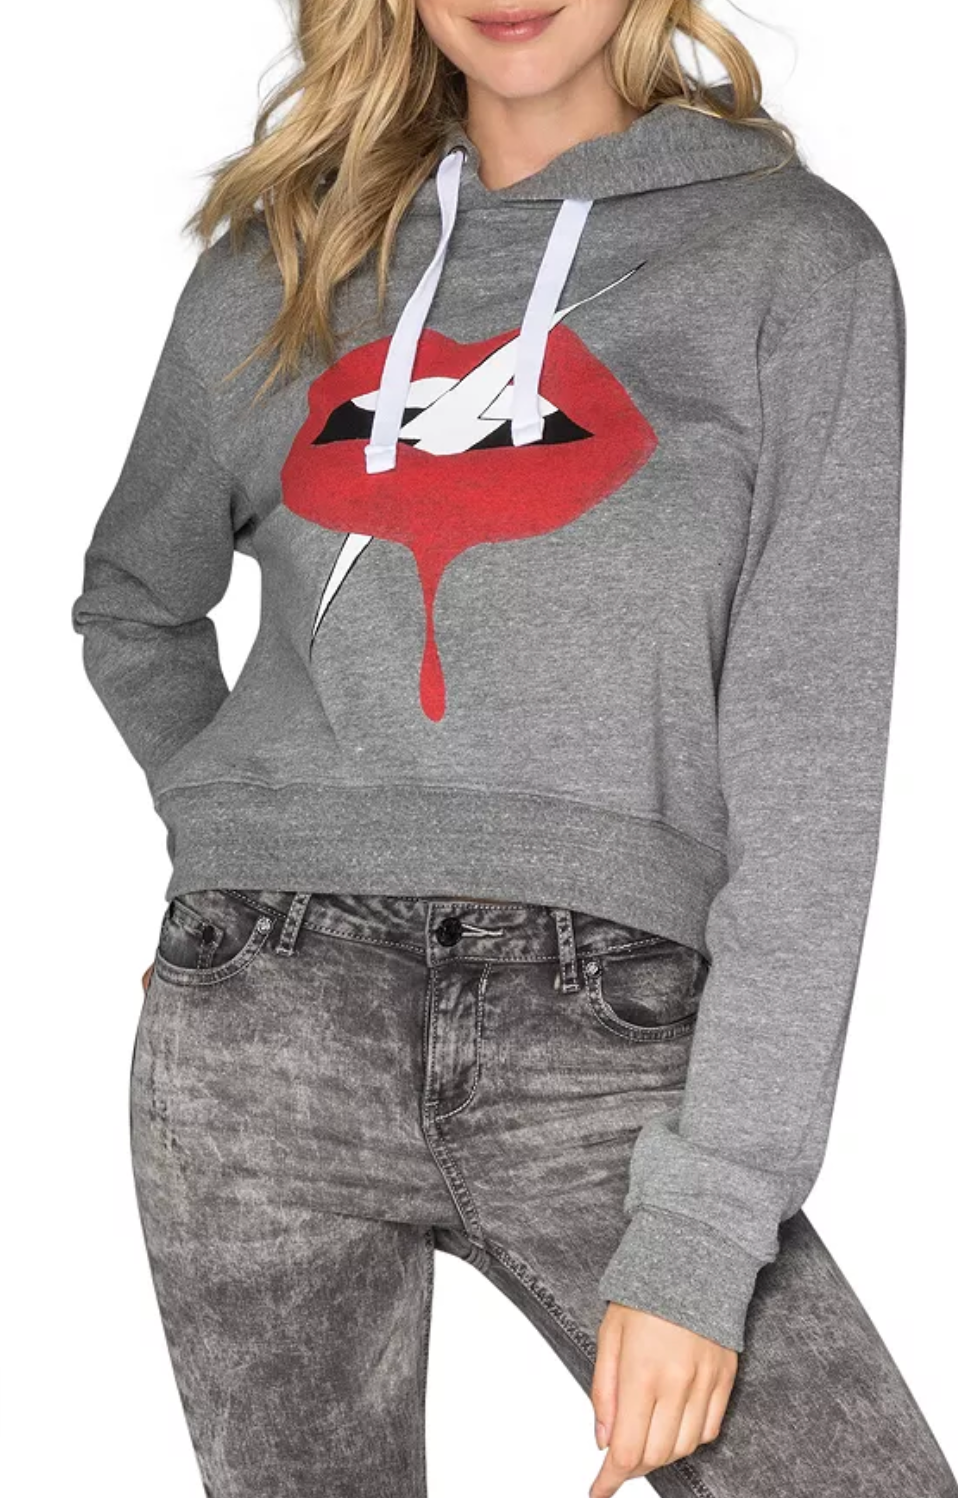 (New) Lips Crop Pullover